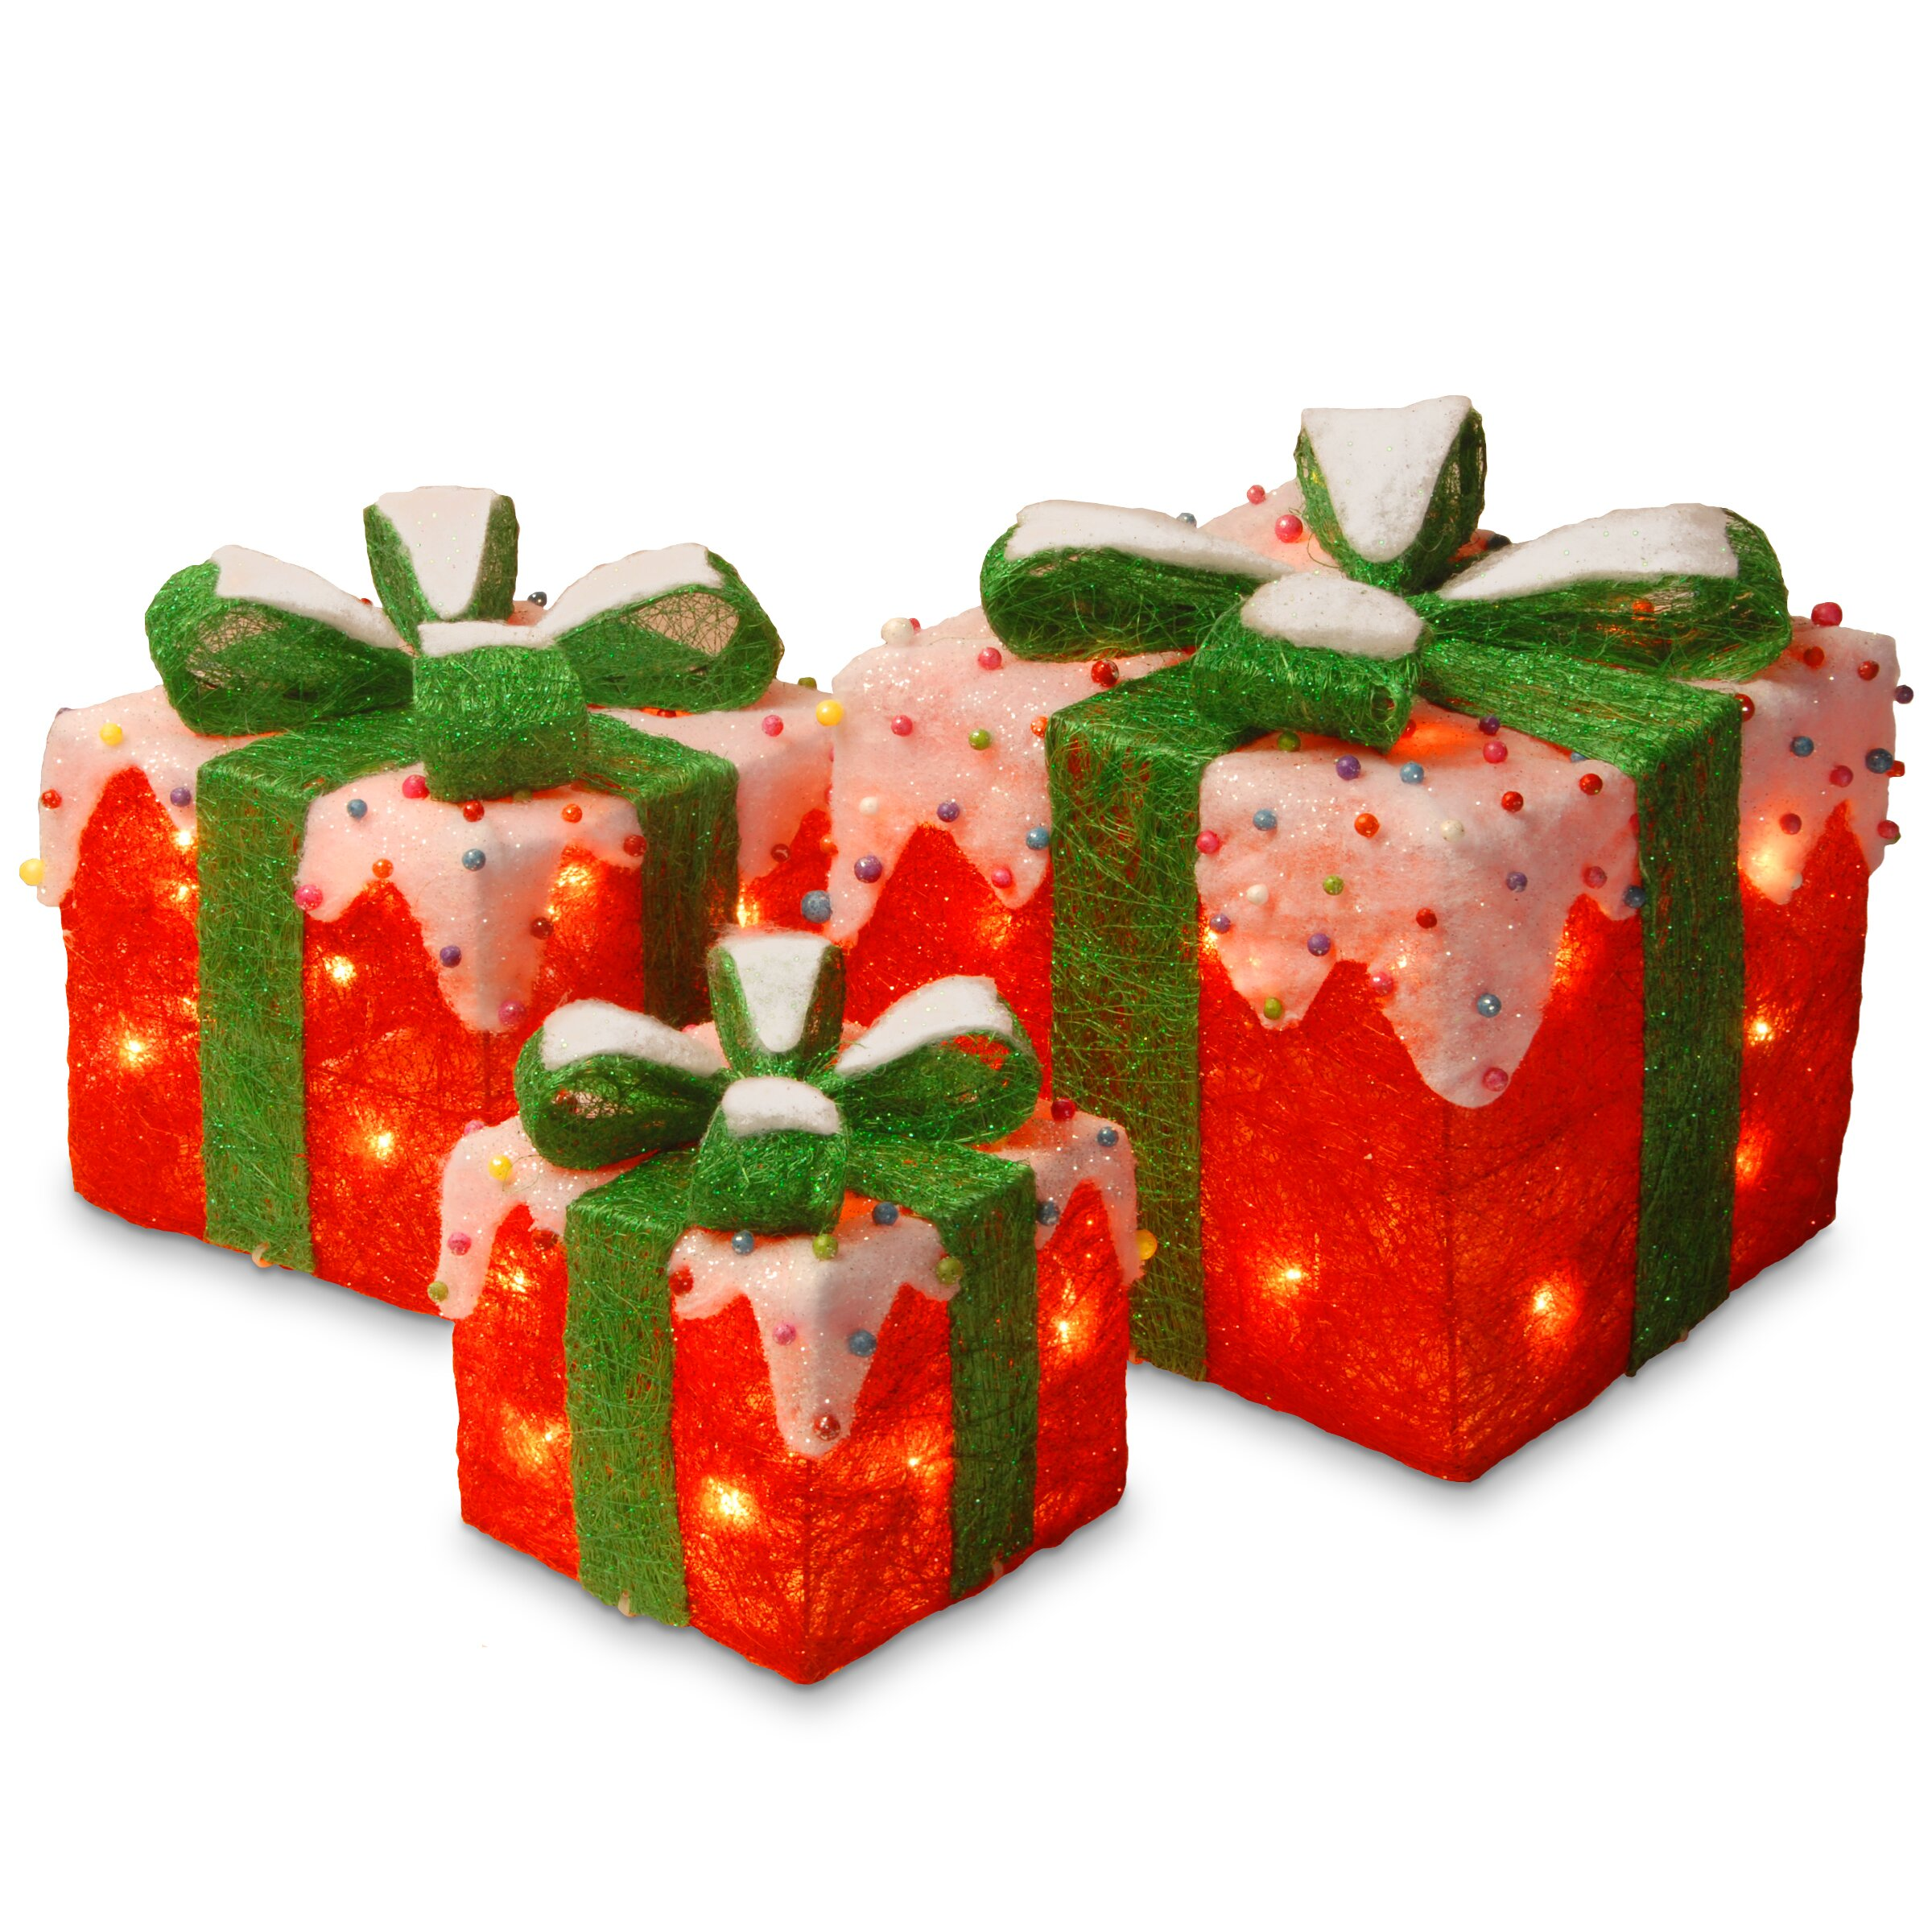 National Tree Co. Decorative Décor 3 Piece Gift Box